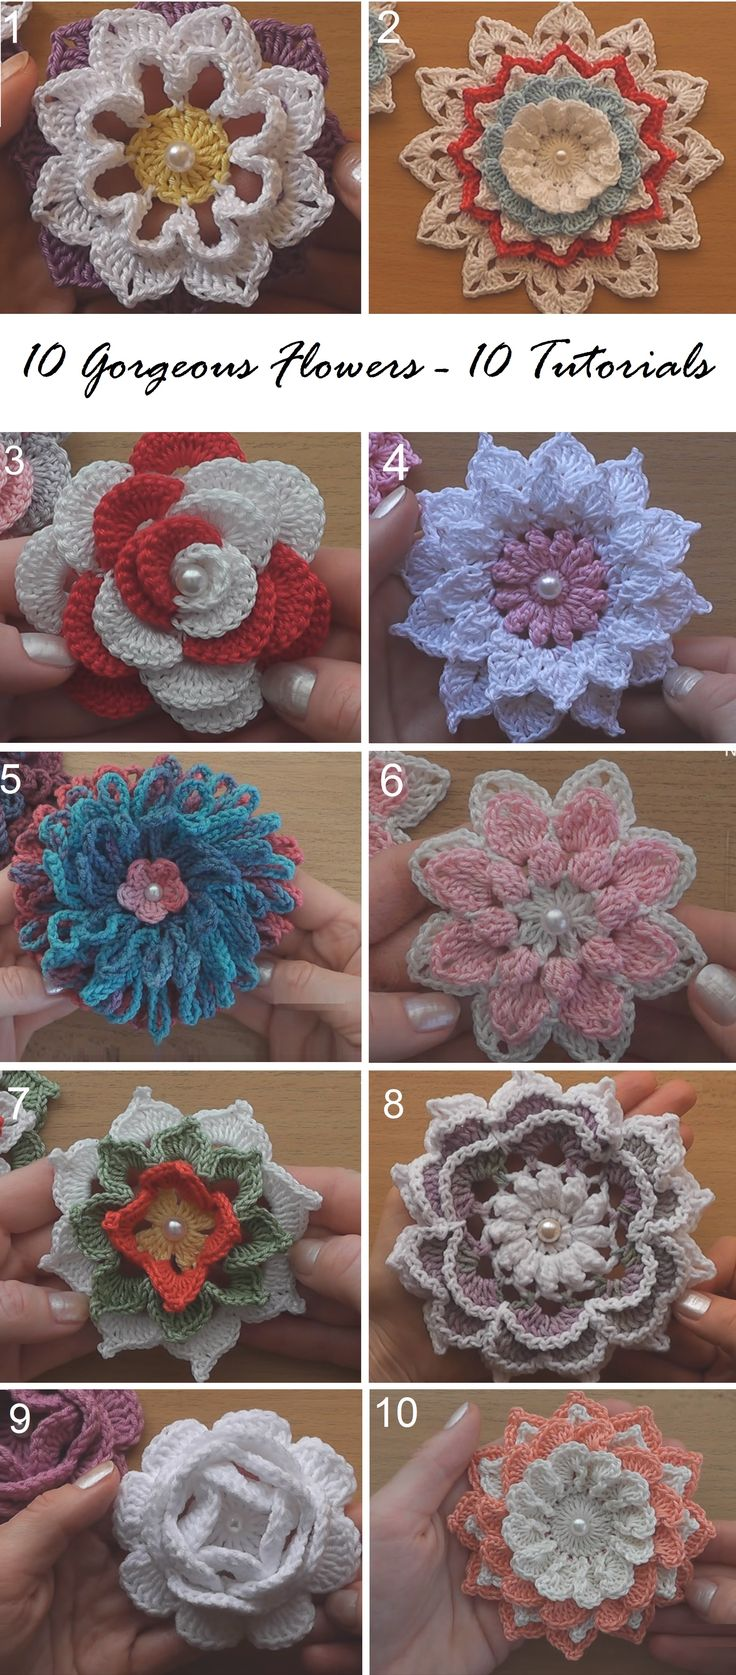 10 Gorgeous Flowers – 10 Crochet Tutorials